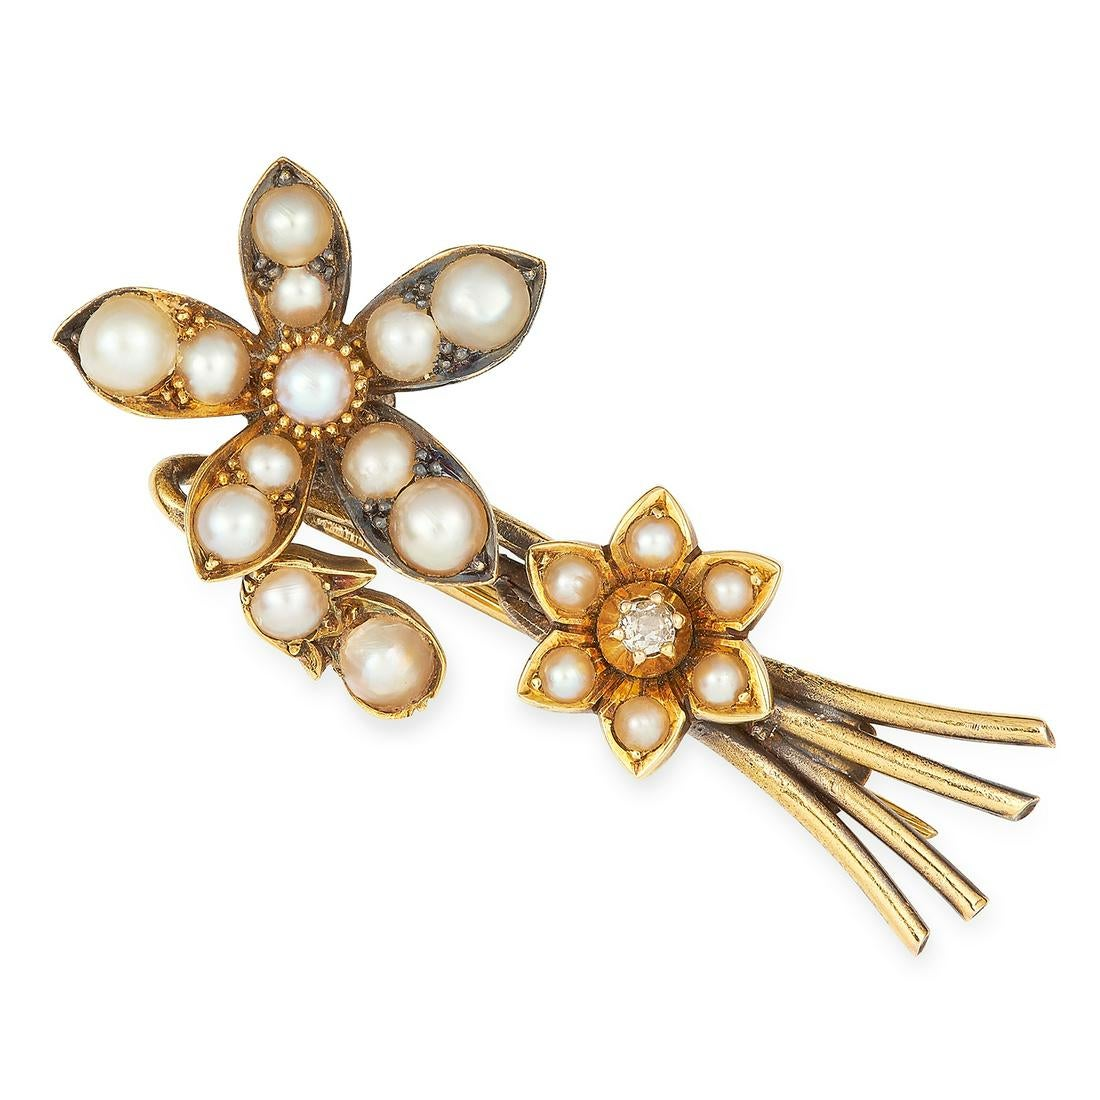 ANTIQUE GEORGIAN PEARL AND DIAMOND EN TREMBLANT FLOWER SPRAY BROOCH set with seed pearls and an